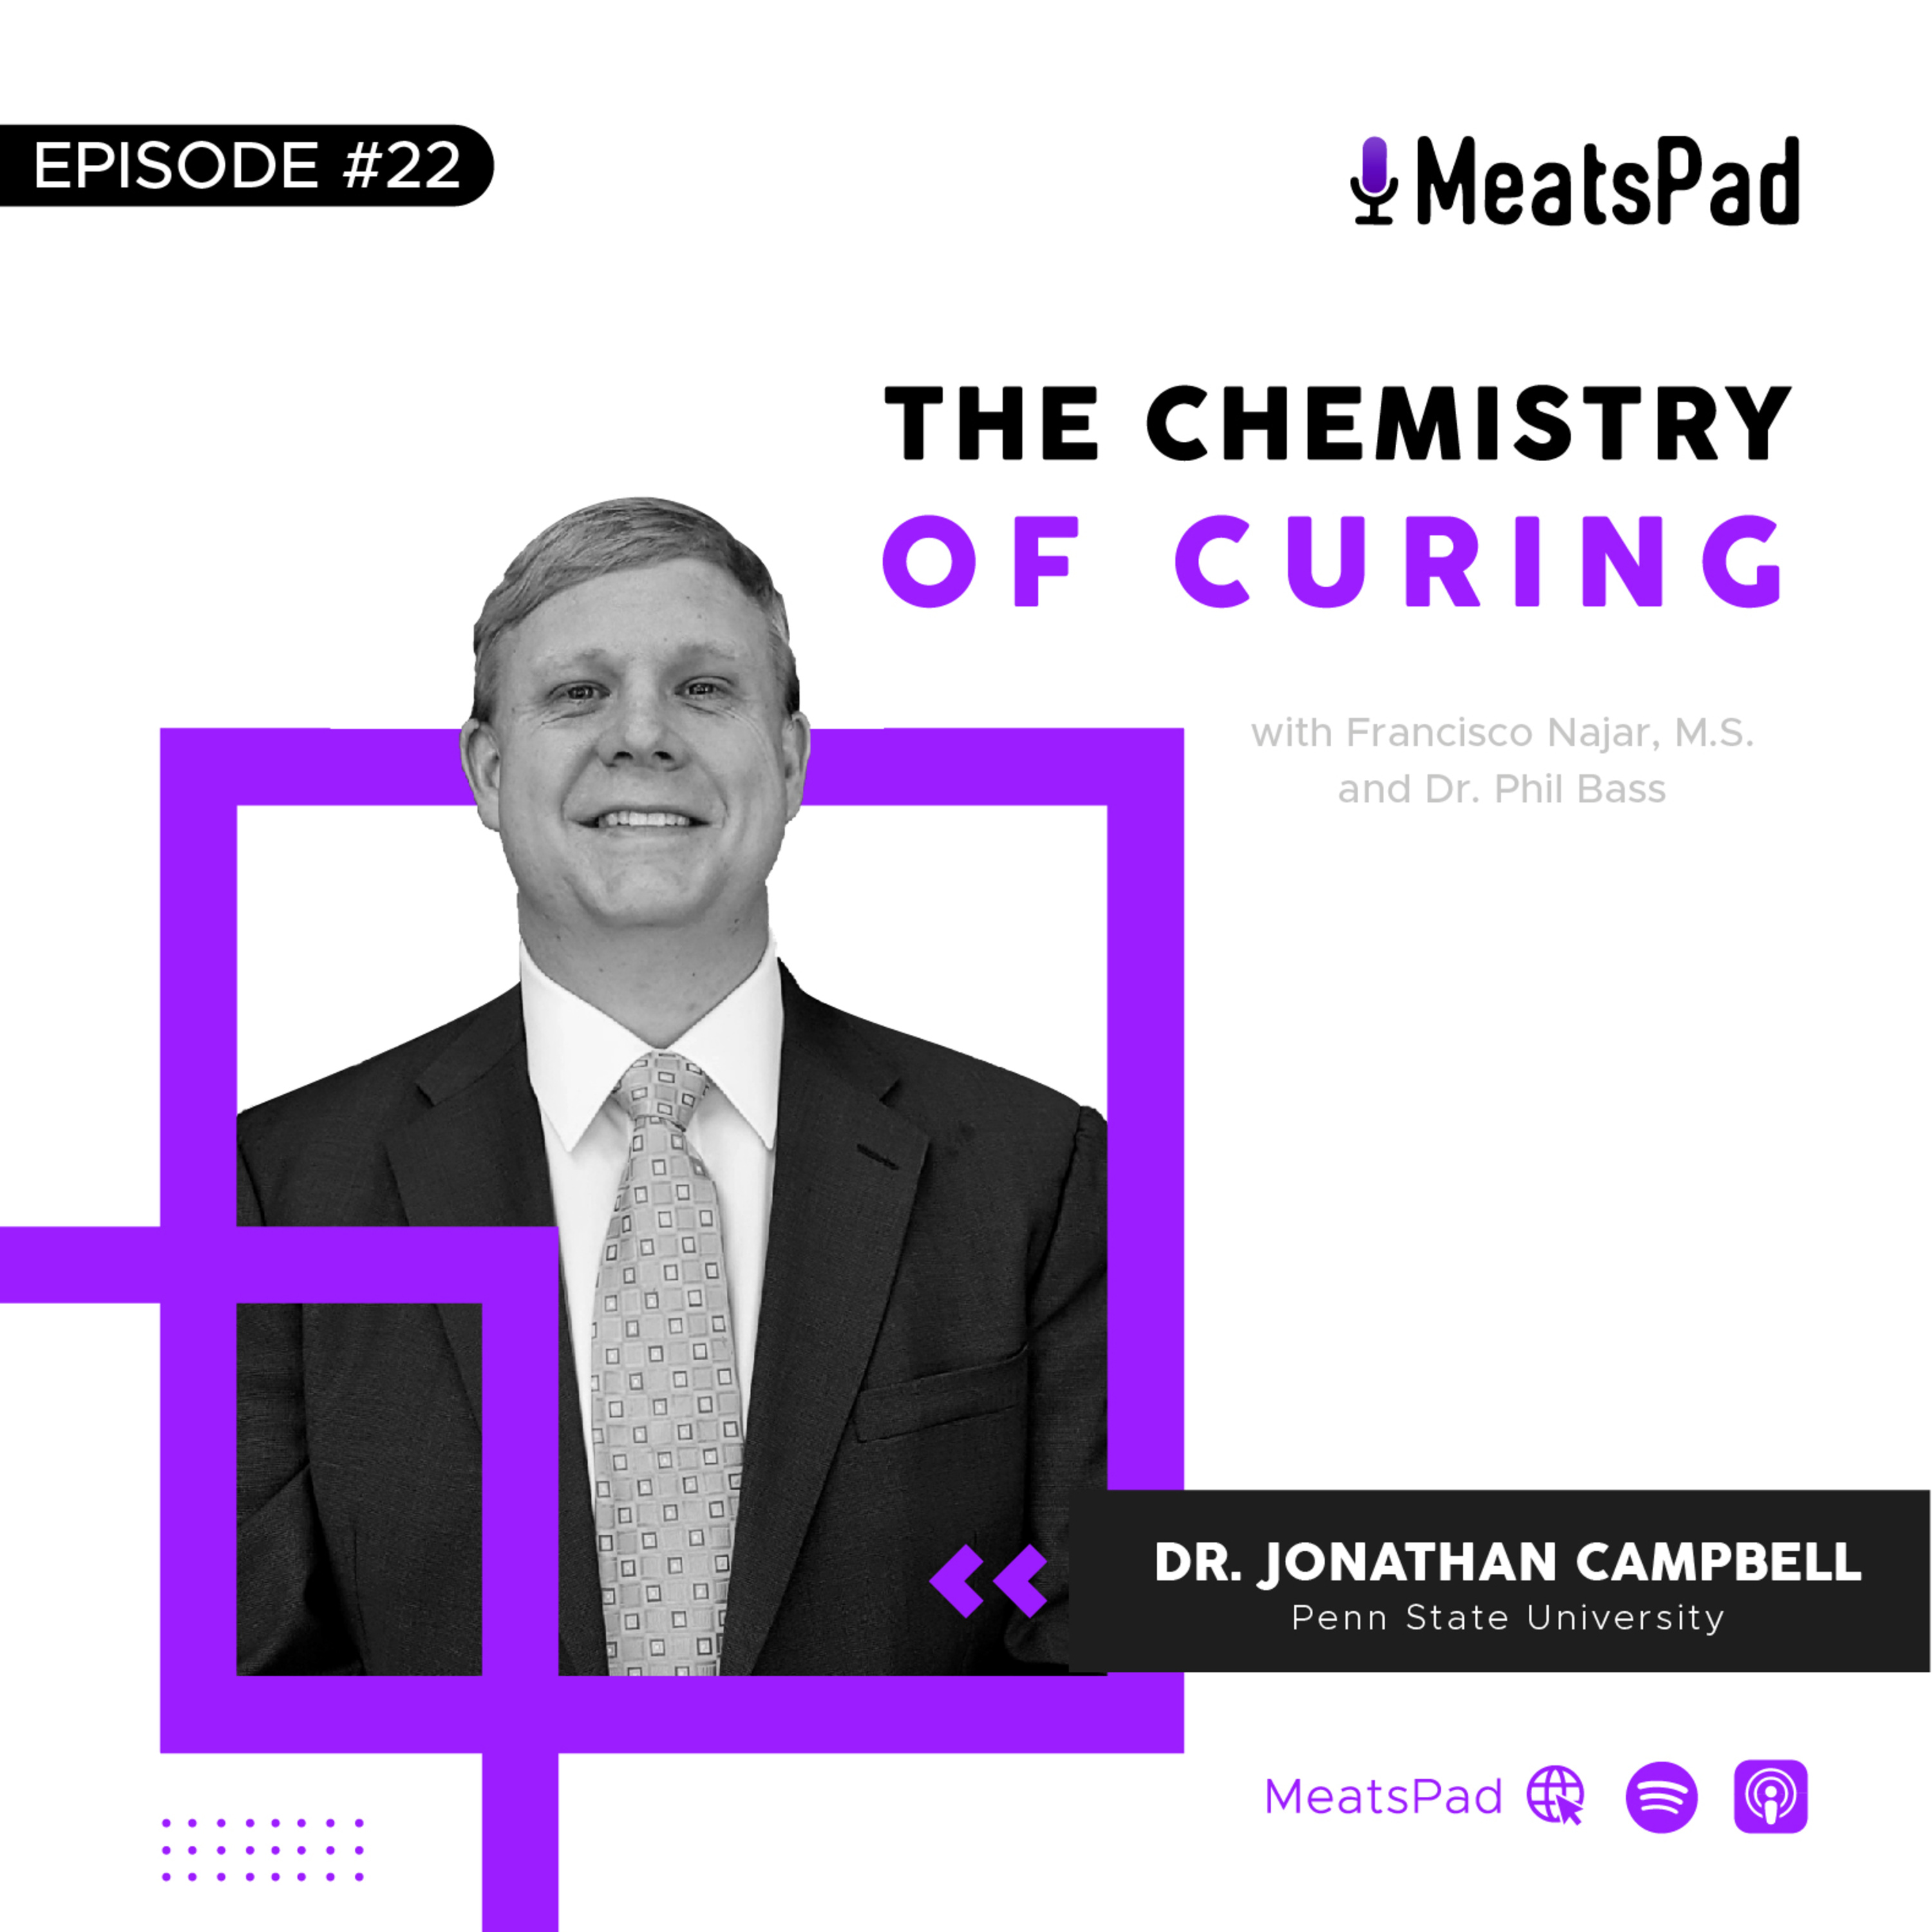 The chemistry of curing - Dr. Jonathan Campbell